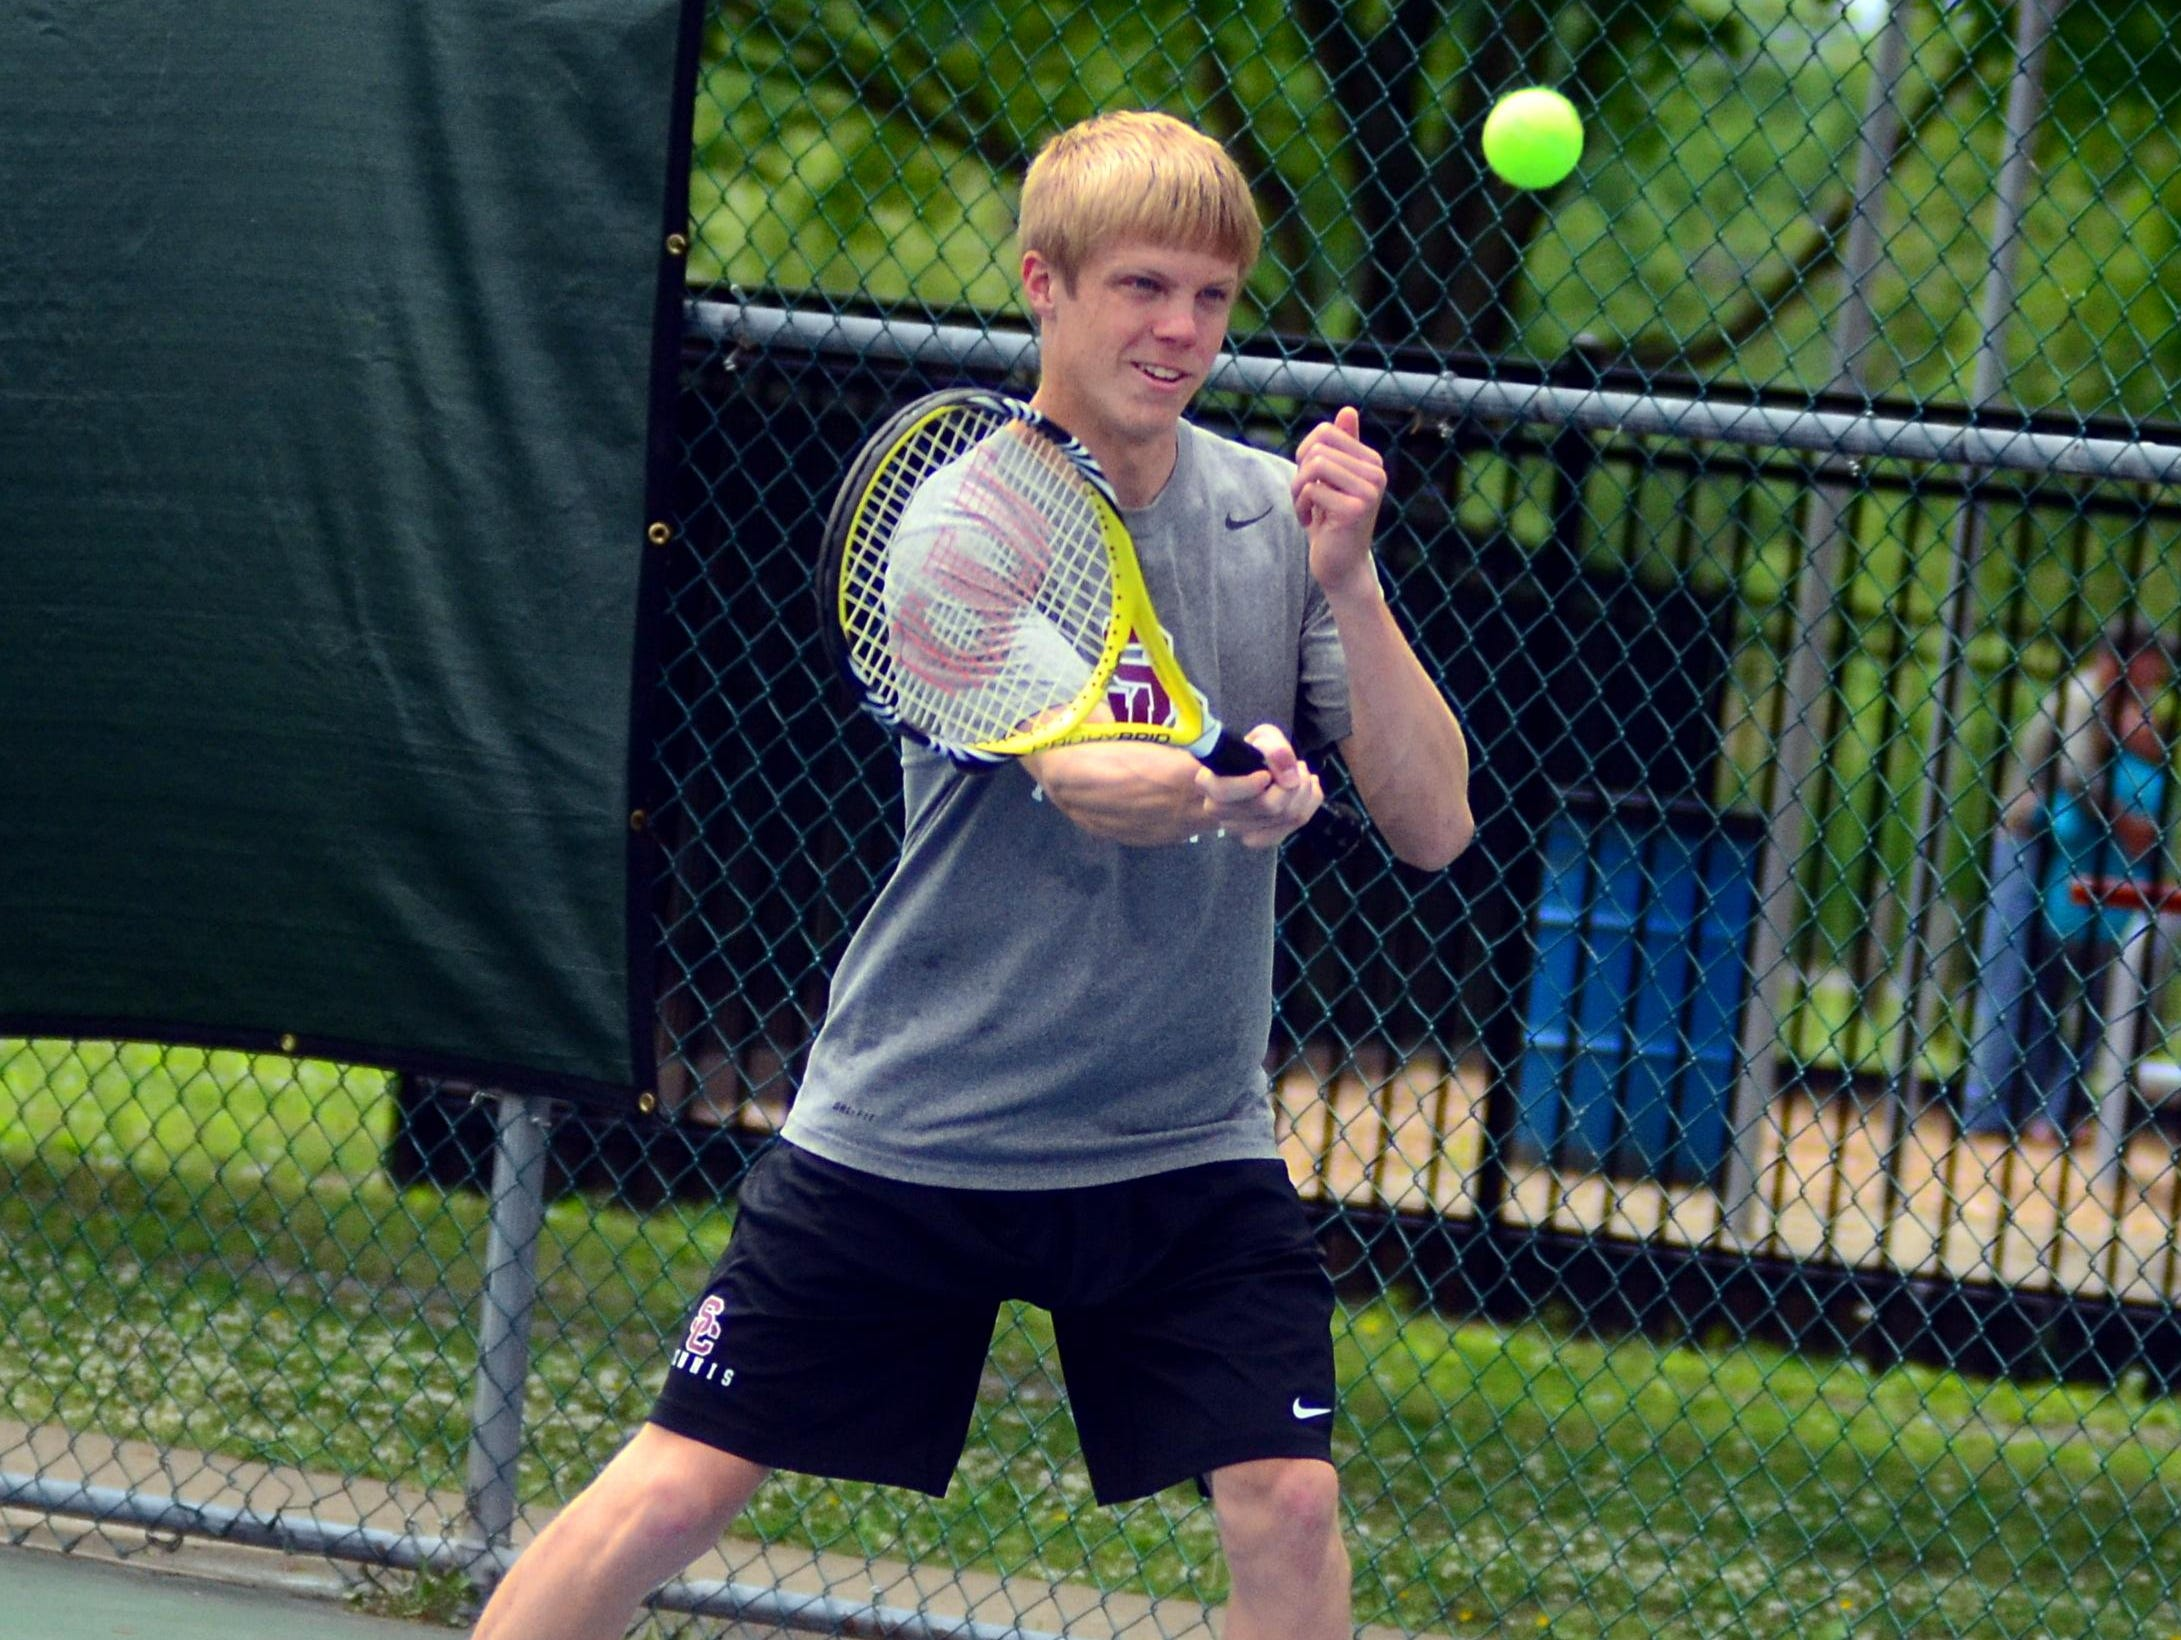 Station Camp High senior Nathan Watson returns a second serve during his first-round singles match on Tuesday at the District 9-AAA Individual Tennis Tournament. Watson finished runner-up to Hendersonville senior Kato Richardson and qualified for the Region 5-AAA Tournament.